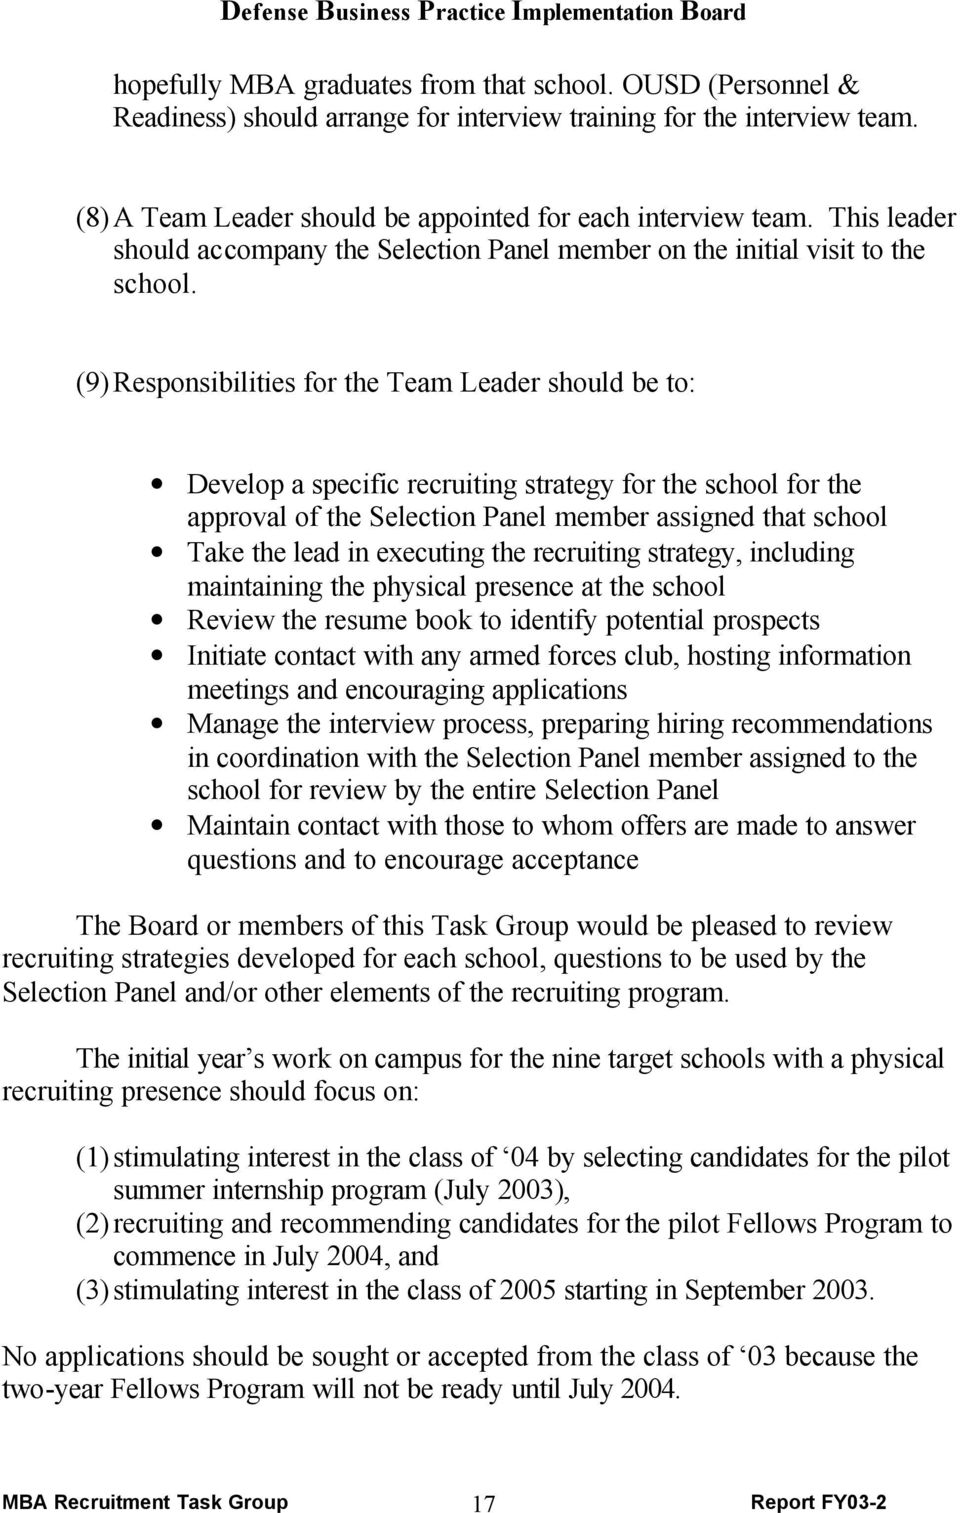 (9) Responsibilities for the Team Leader should be to: Develop a specific recruiting strategy for the school for the approval of the Selection Panel member assigned that school Take the lead in